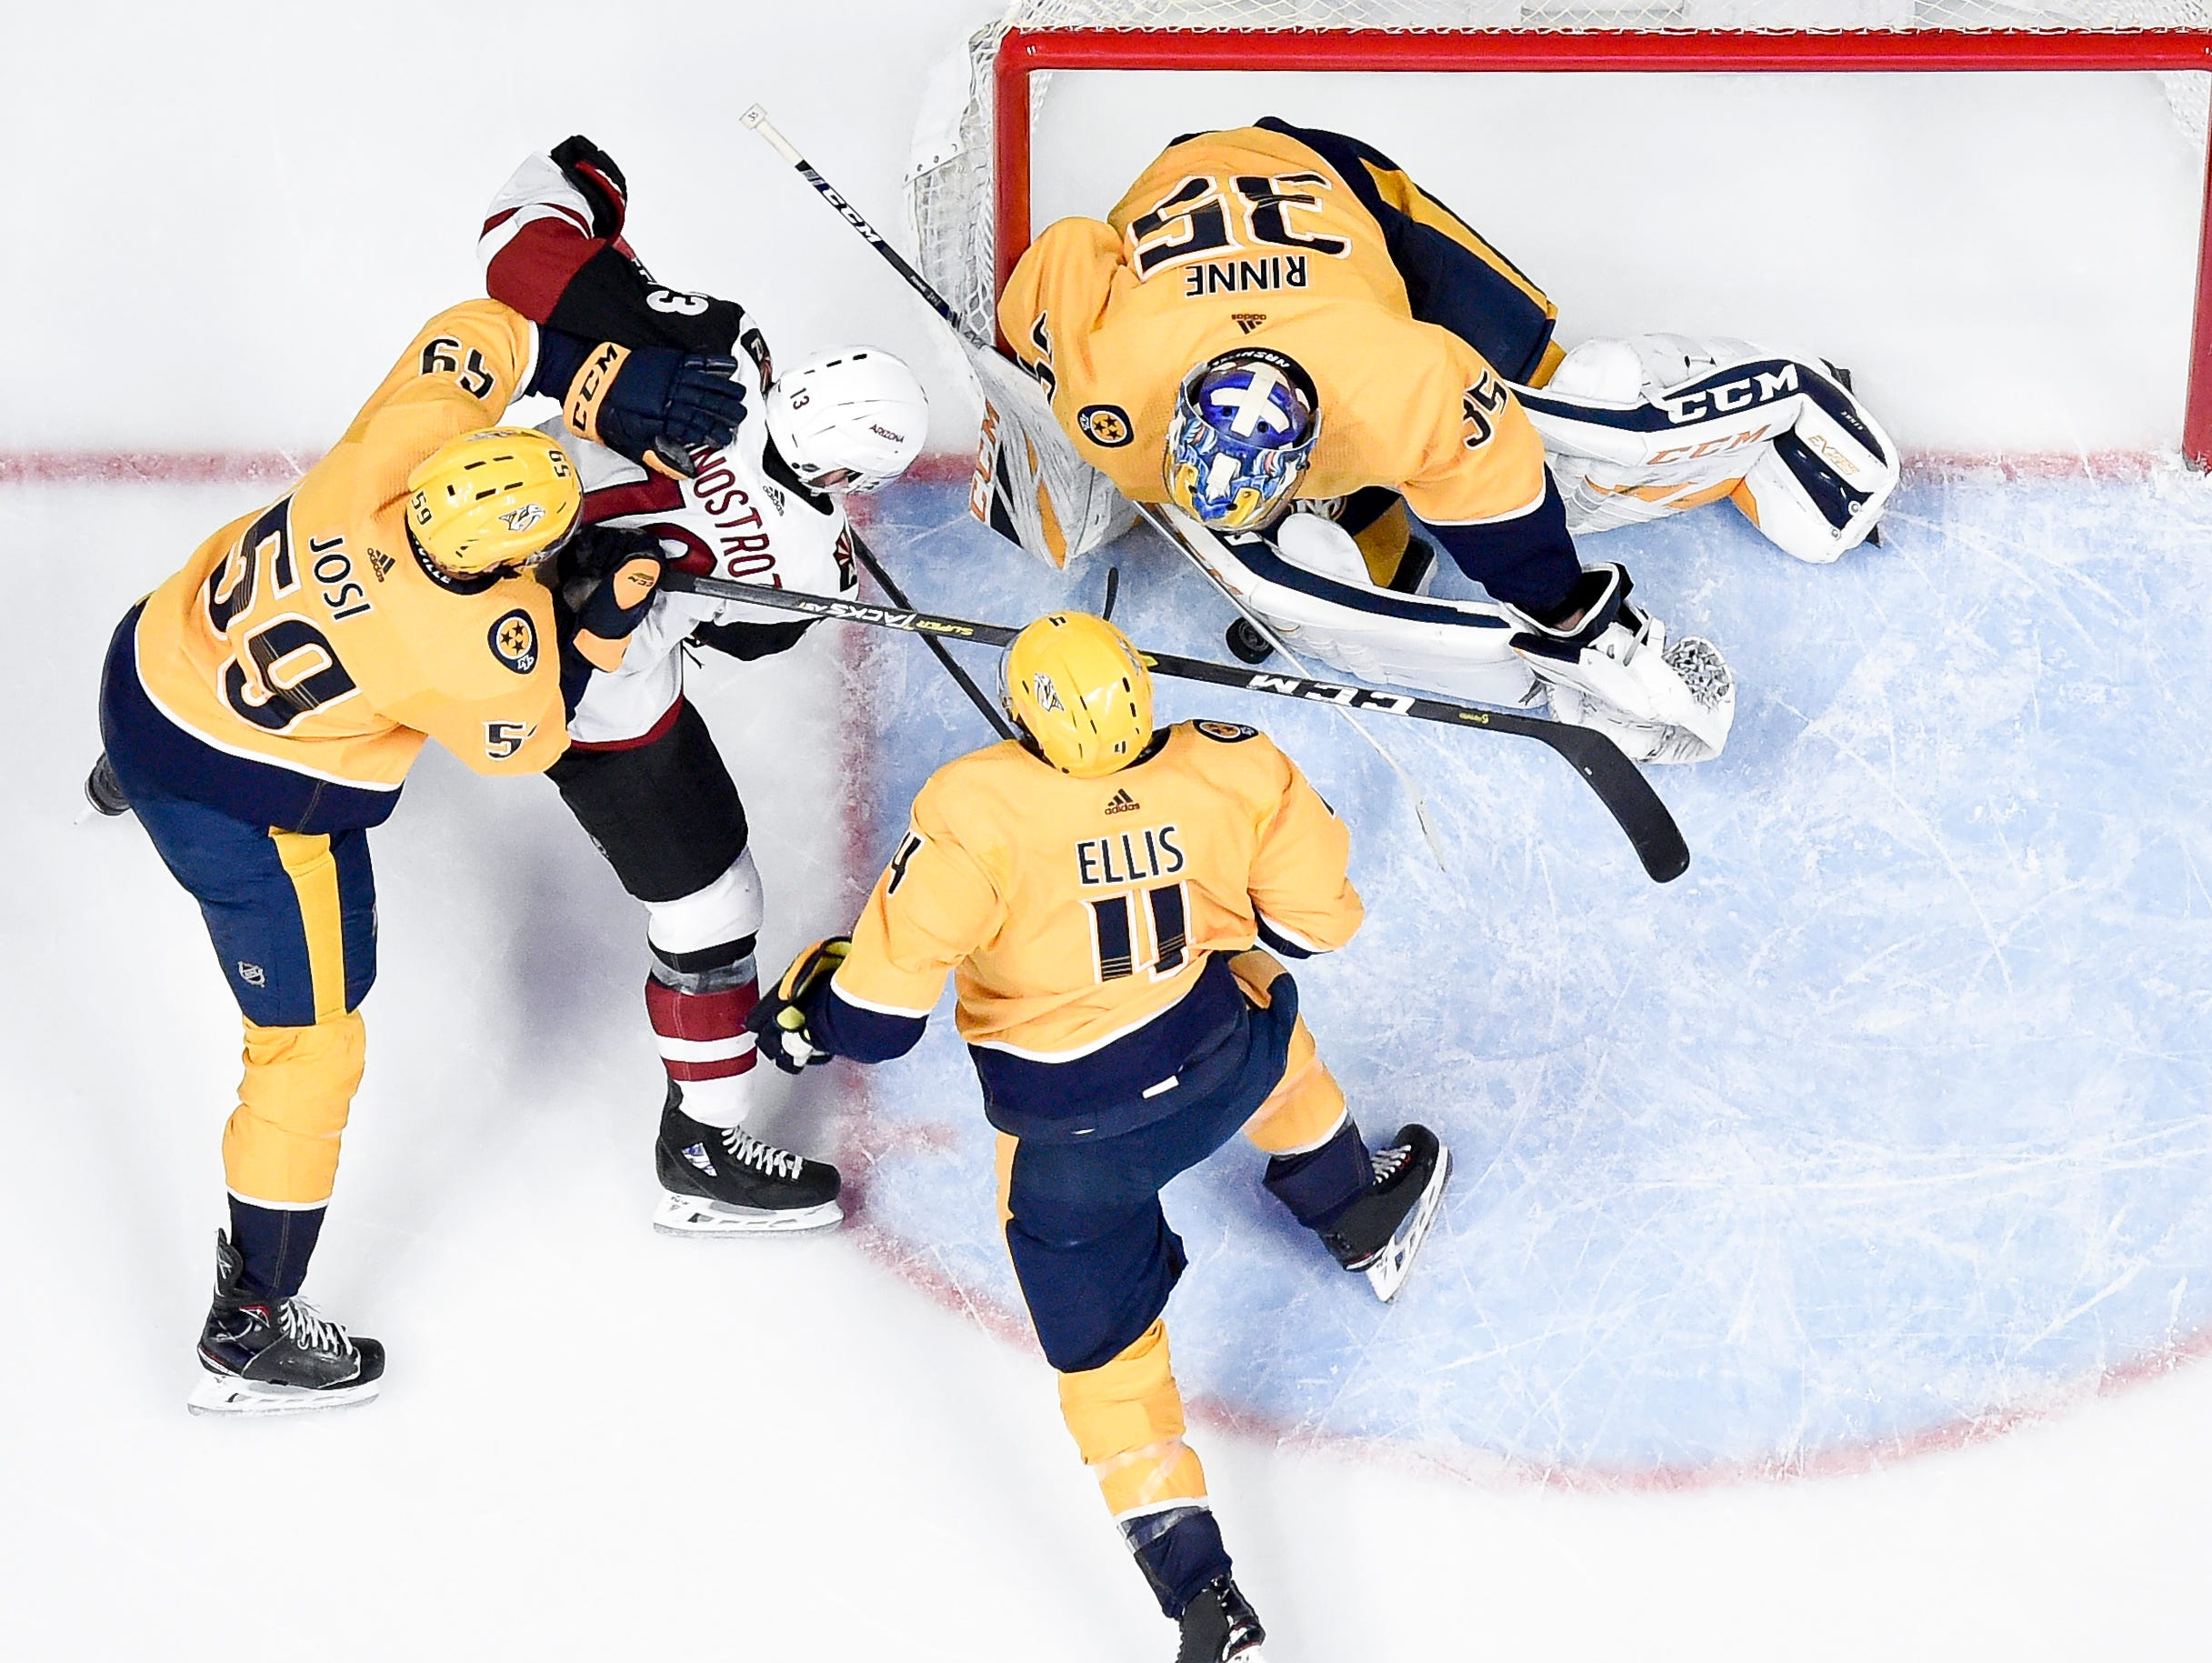 Nashville Predators goaltender Pekka Rinne (35), defenseman Roman Josi (59), and defenseman Mattias Ekholm (14) defend against Arizona Coyotes center Vinnie Hinostroza (13) during the first period at Bridgestone Arena in Nashville, Tenn., Tuesday, Feb. 5, 2019.